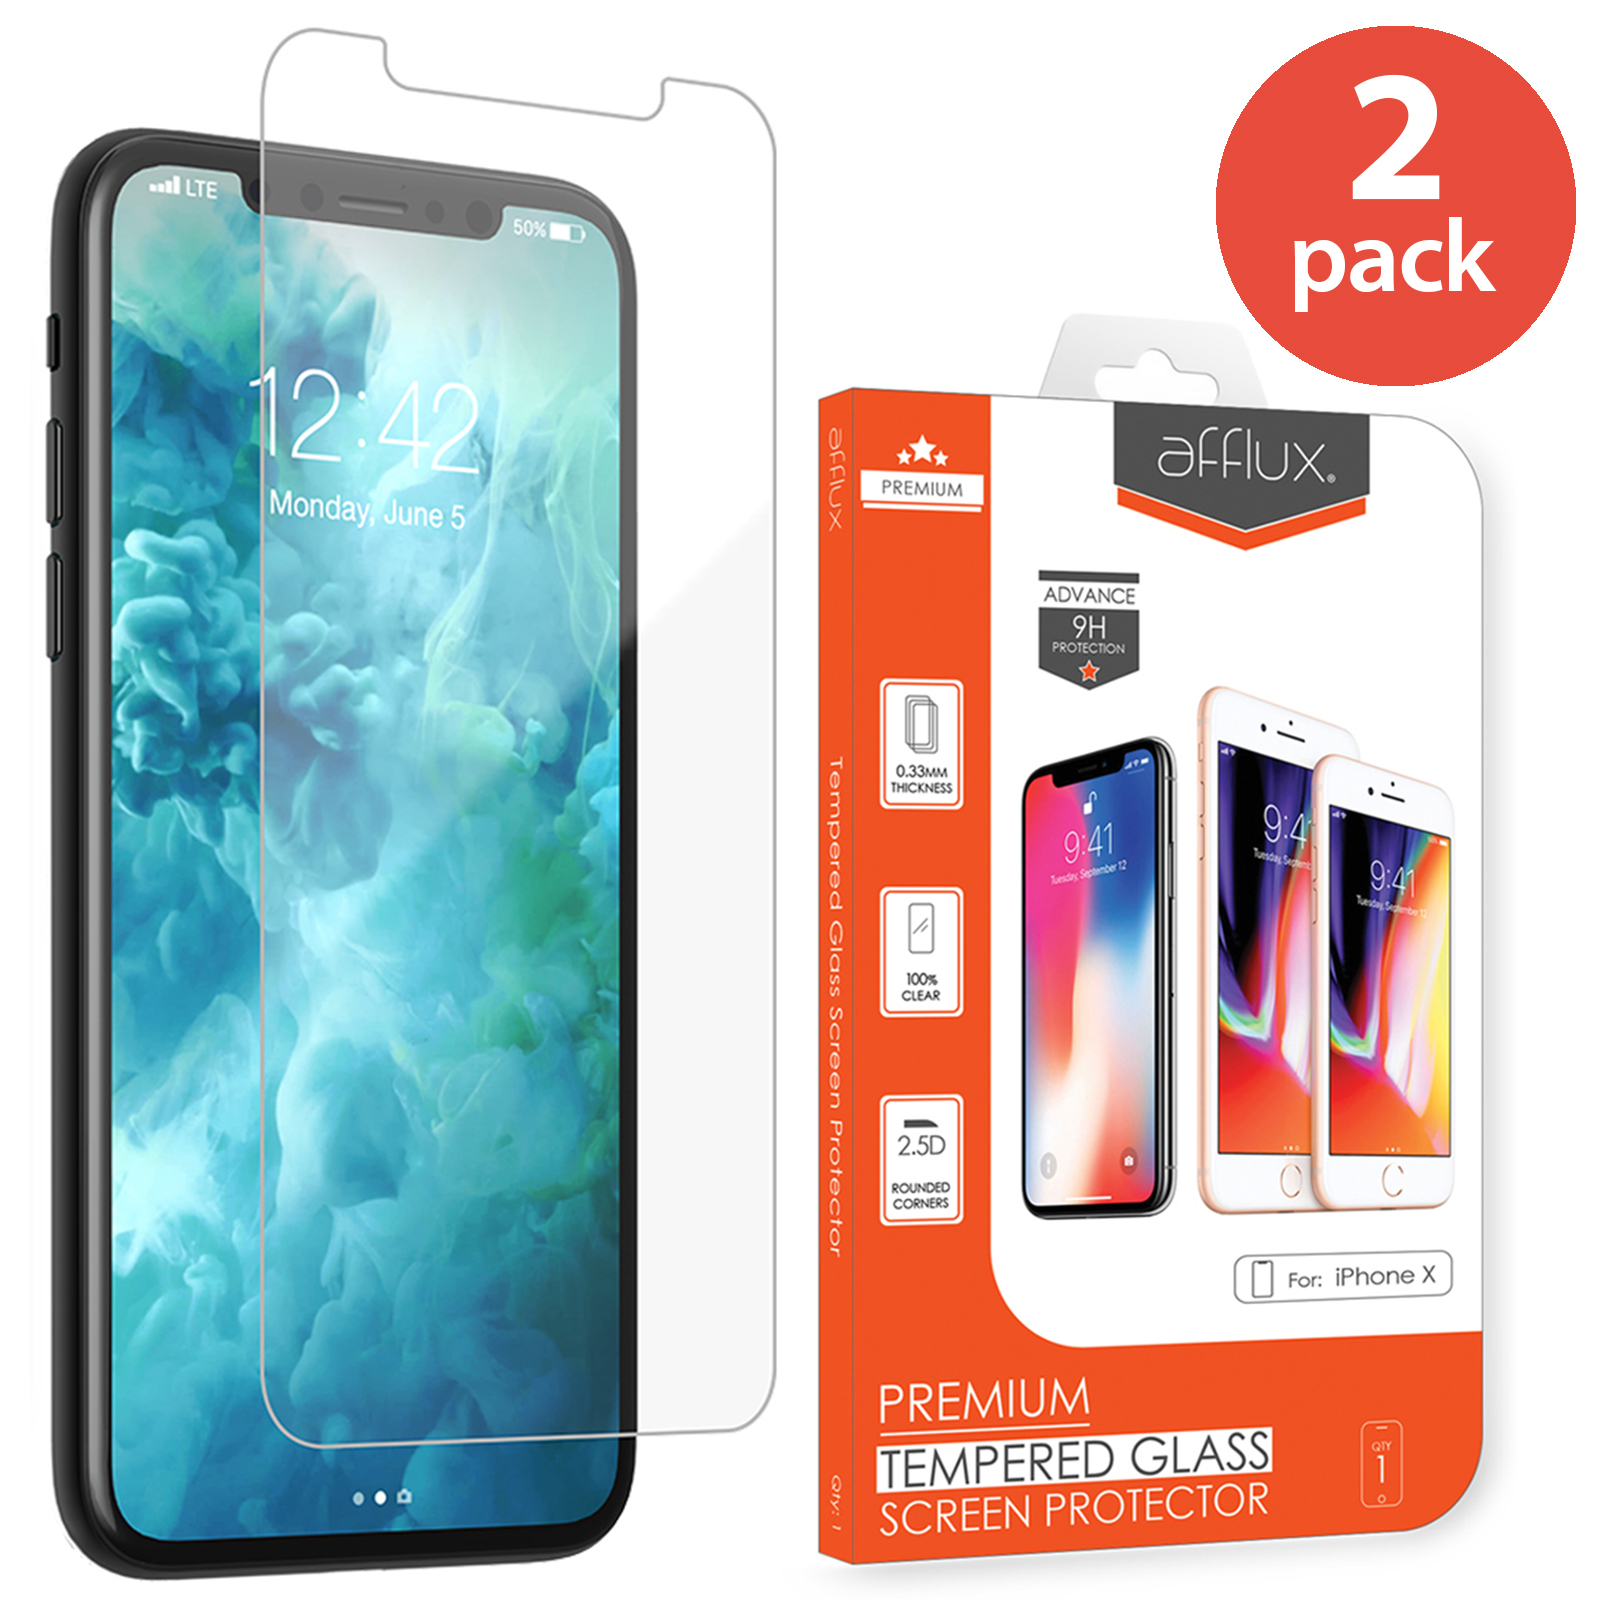 2x Afflux Apple iPhone X Tempered Glass Screen Protector Film Guard Case Friendly For iPhone 10 5.8 inch